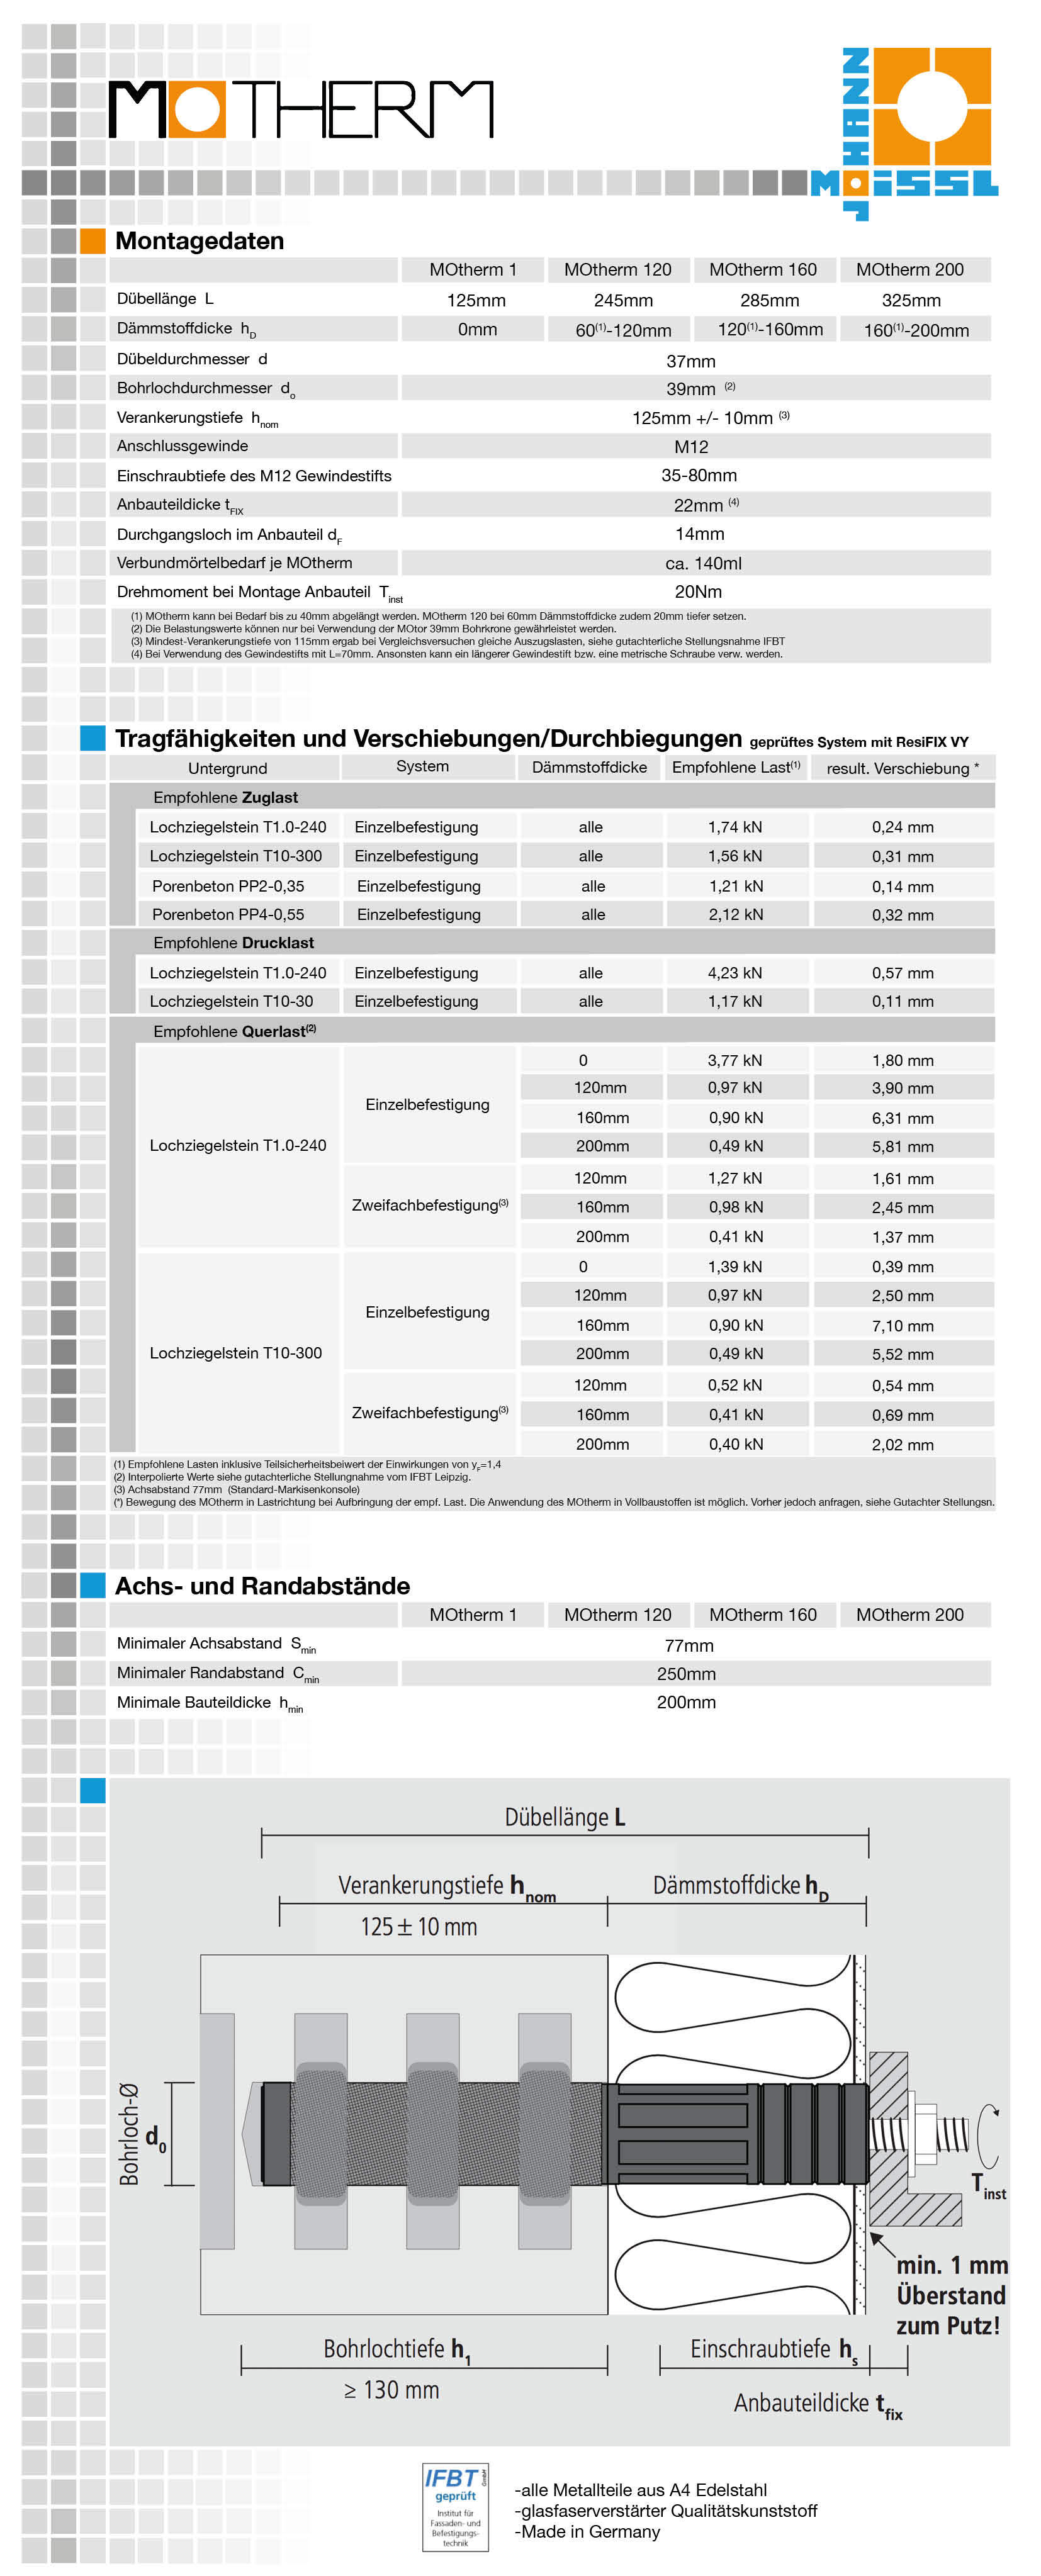 Datenblatt_MOtherm_Liste_S